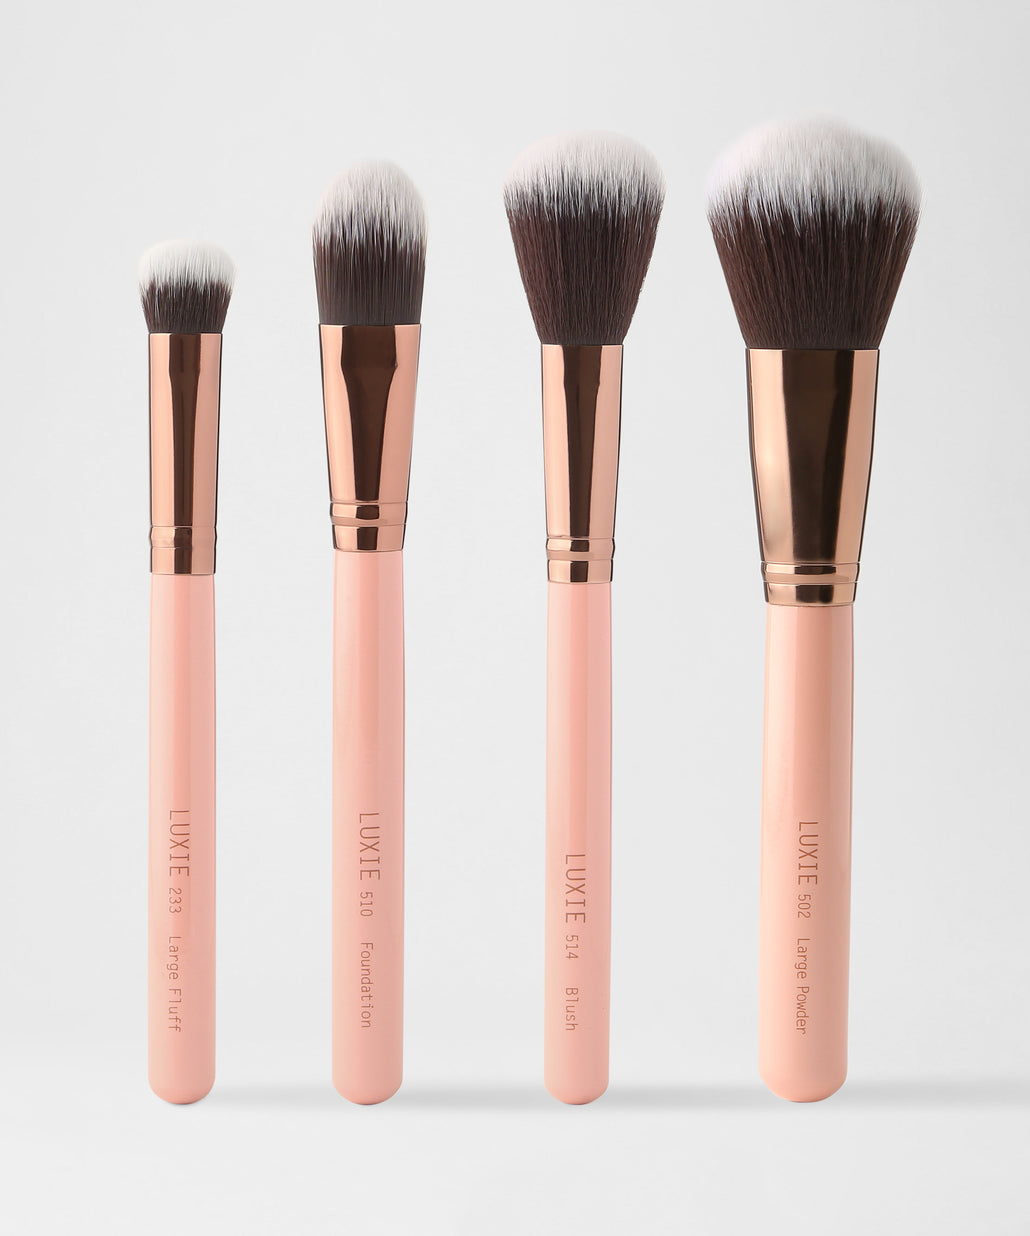 LUXIE Face Complexion Brush Set - Rose Gold